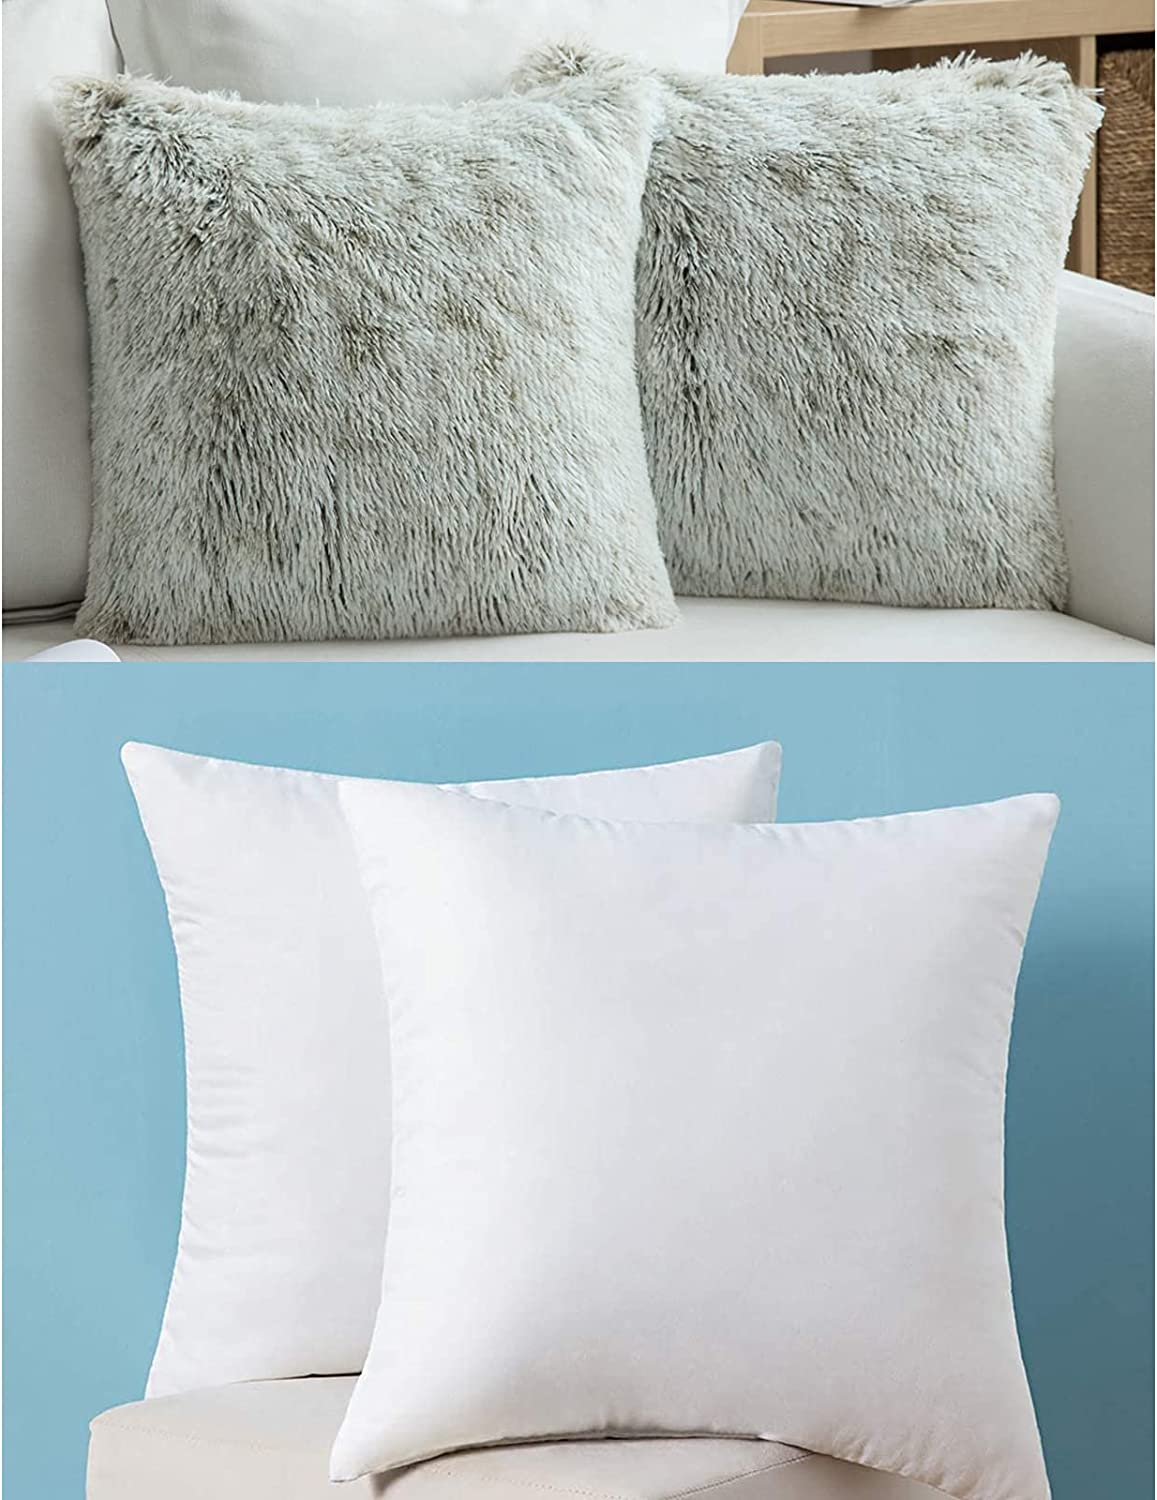 MIULEE Very popular Set 1 year warranty of 2 Throw and Plush Pack Inserts Pillow